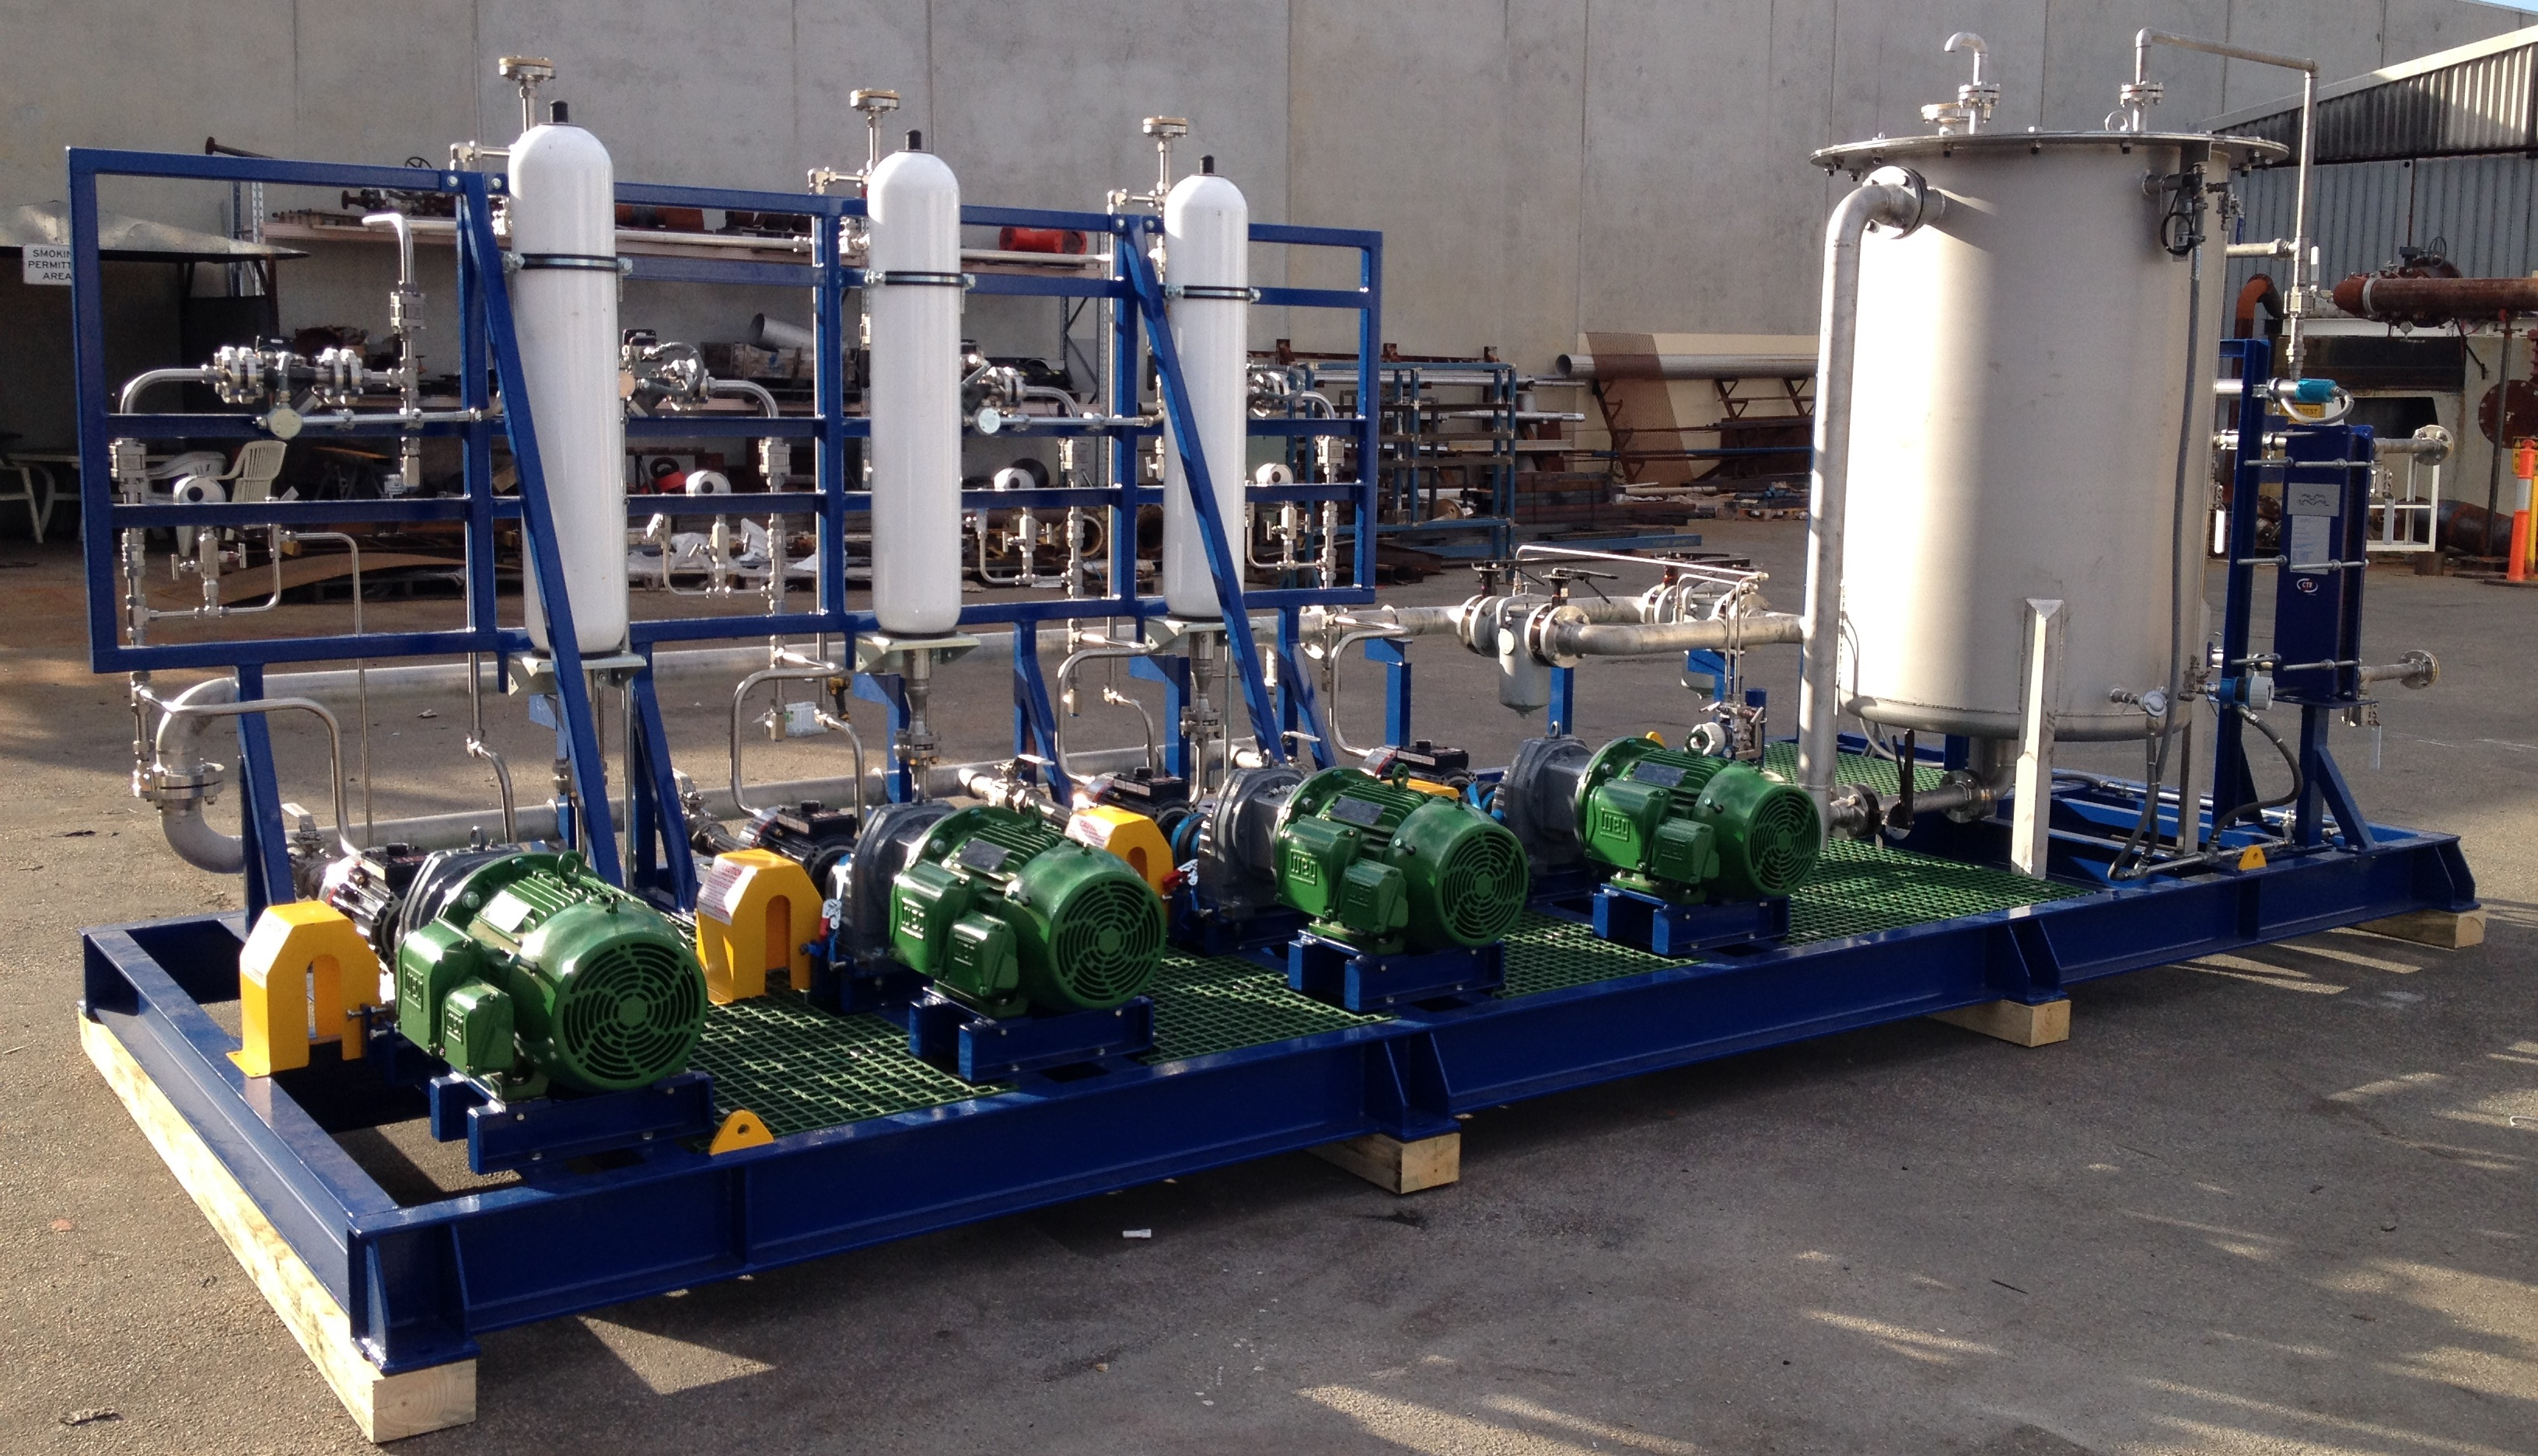 Seal water multi pump skids to support main ore slurry pumps dynapumps also supplied 2 off 35kw chillers as part of this package to provide cooling water to the seal water systems which are located in the remote ccuart Images